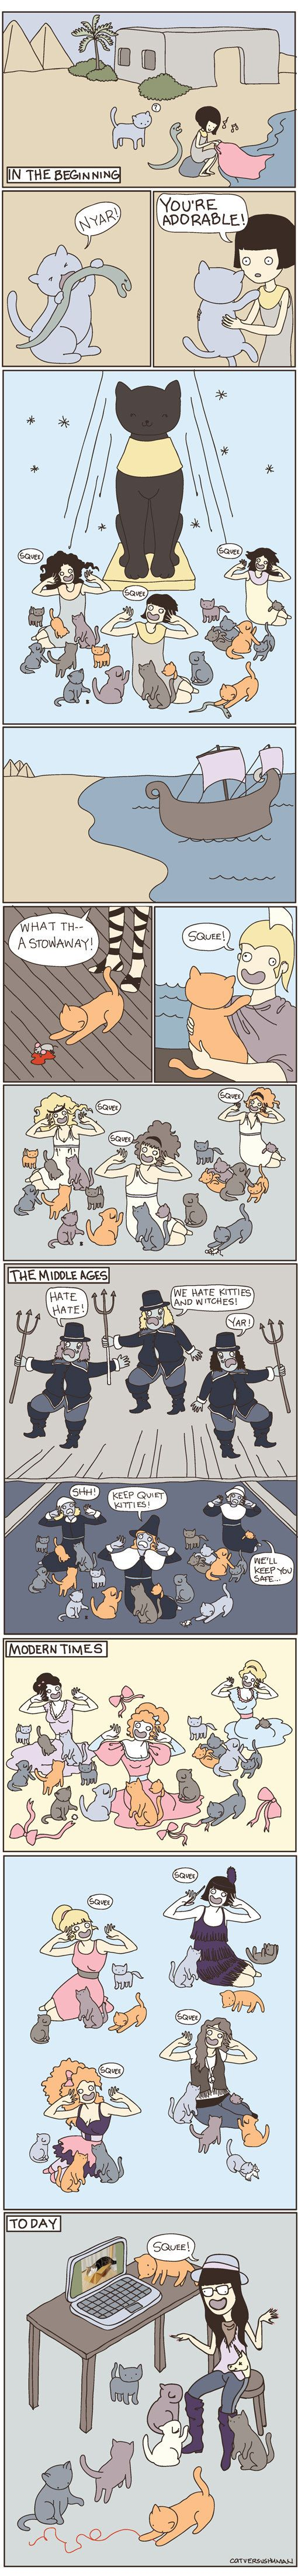 "Cats through the ages. via Buzzfeed, but credit goes to ""cat versus human"" comic. which is the best."